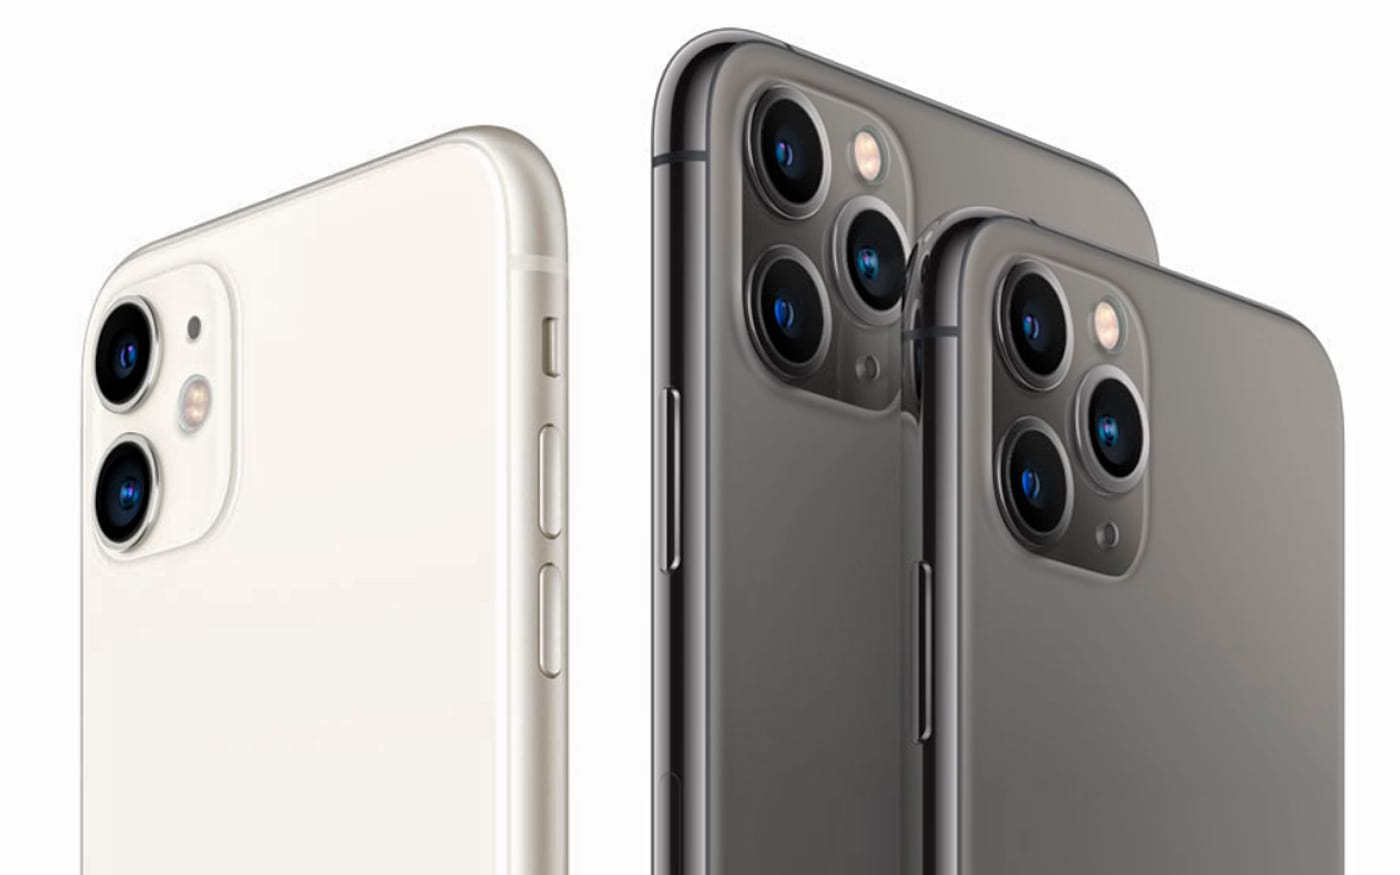 iPhone 11 supera expectativas de venda e Apple aumenta produção